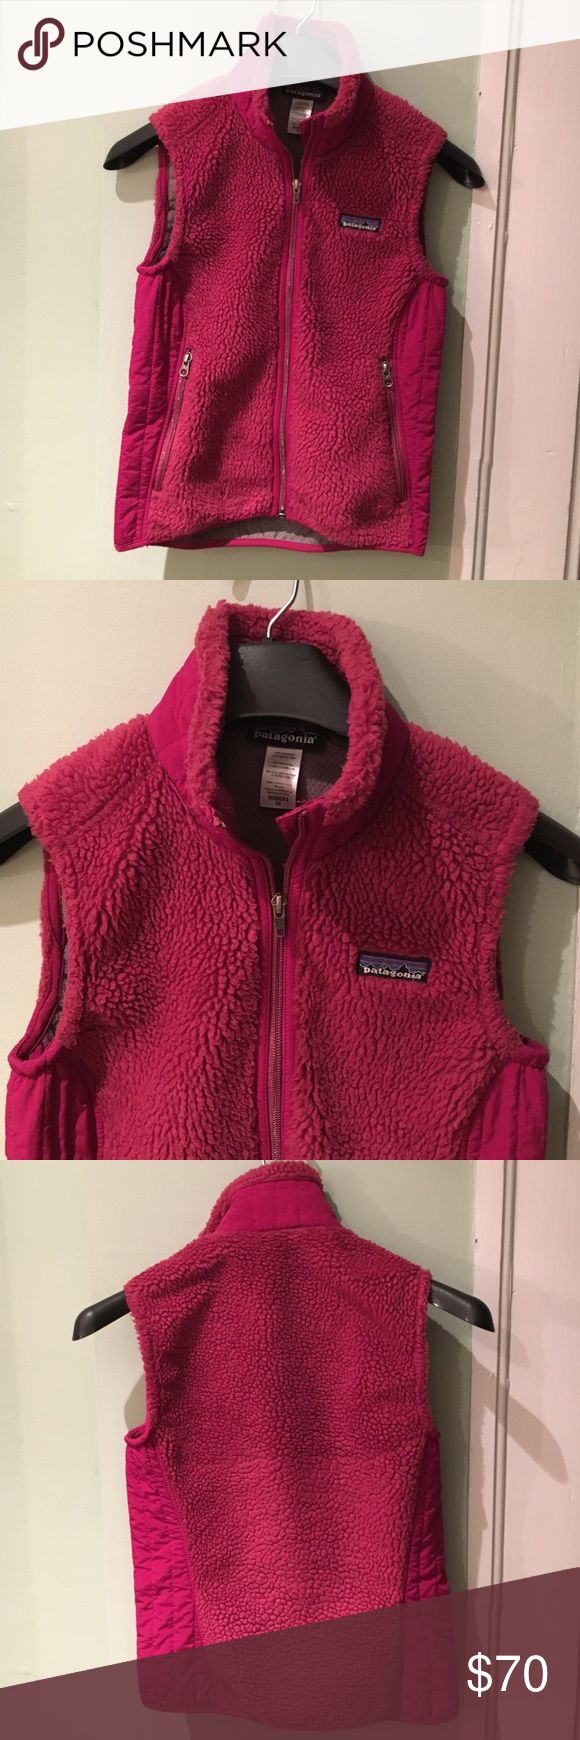 Sale** Patagonia Retro-X vest. Size XS. Magenta. Women's Patagonia Retro-X vest in Magenta. Size XS. In very good condition! Two zipper closure pockets. Let me know if you have any questions! Patagonia Jackets & Coats Vests